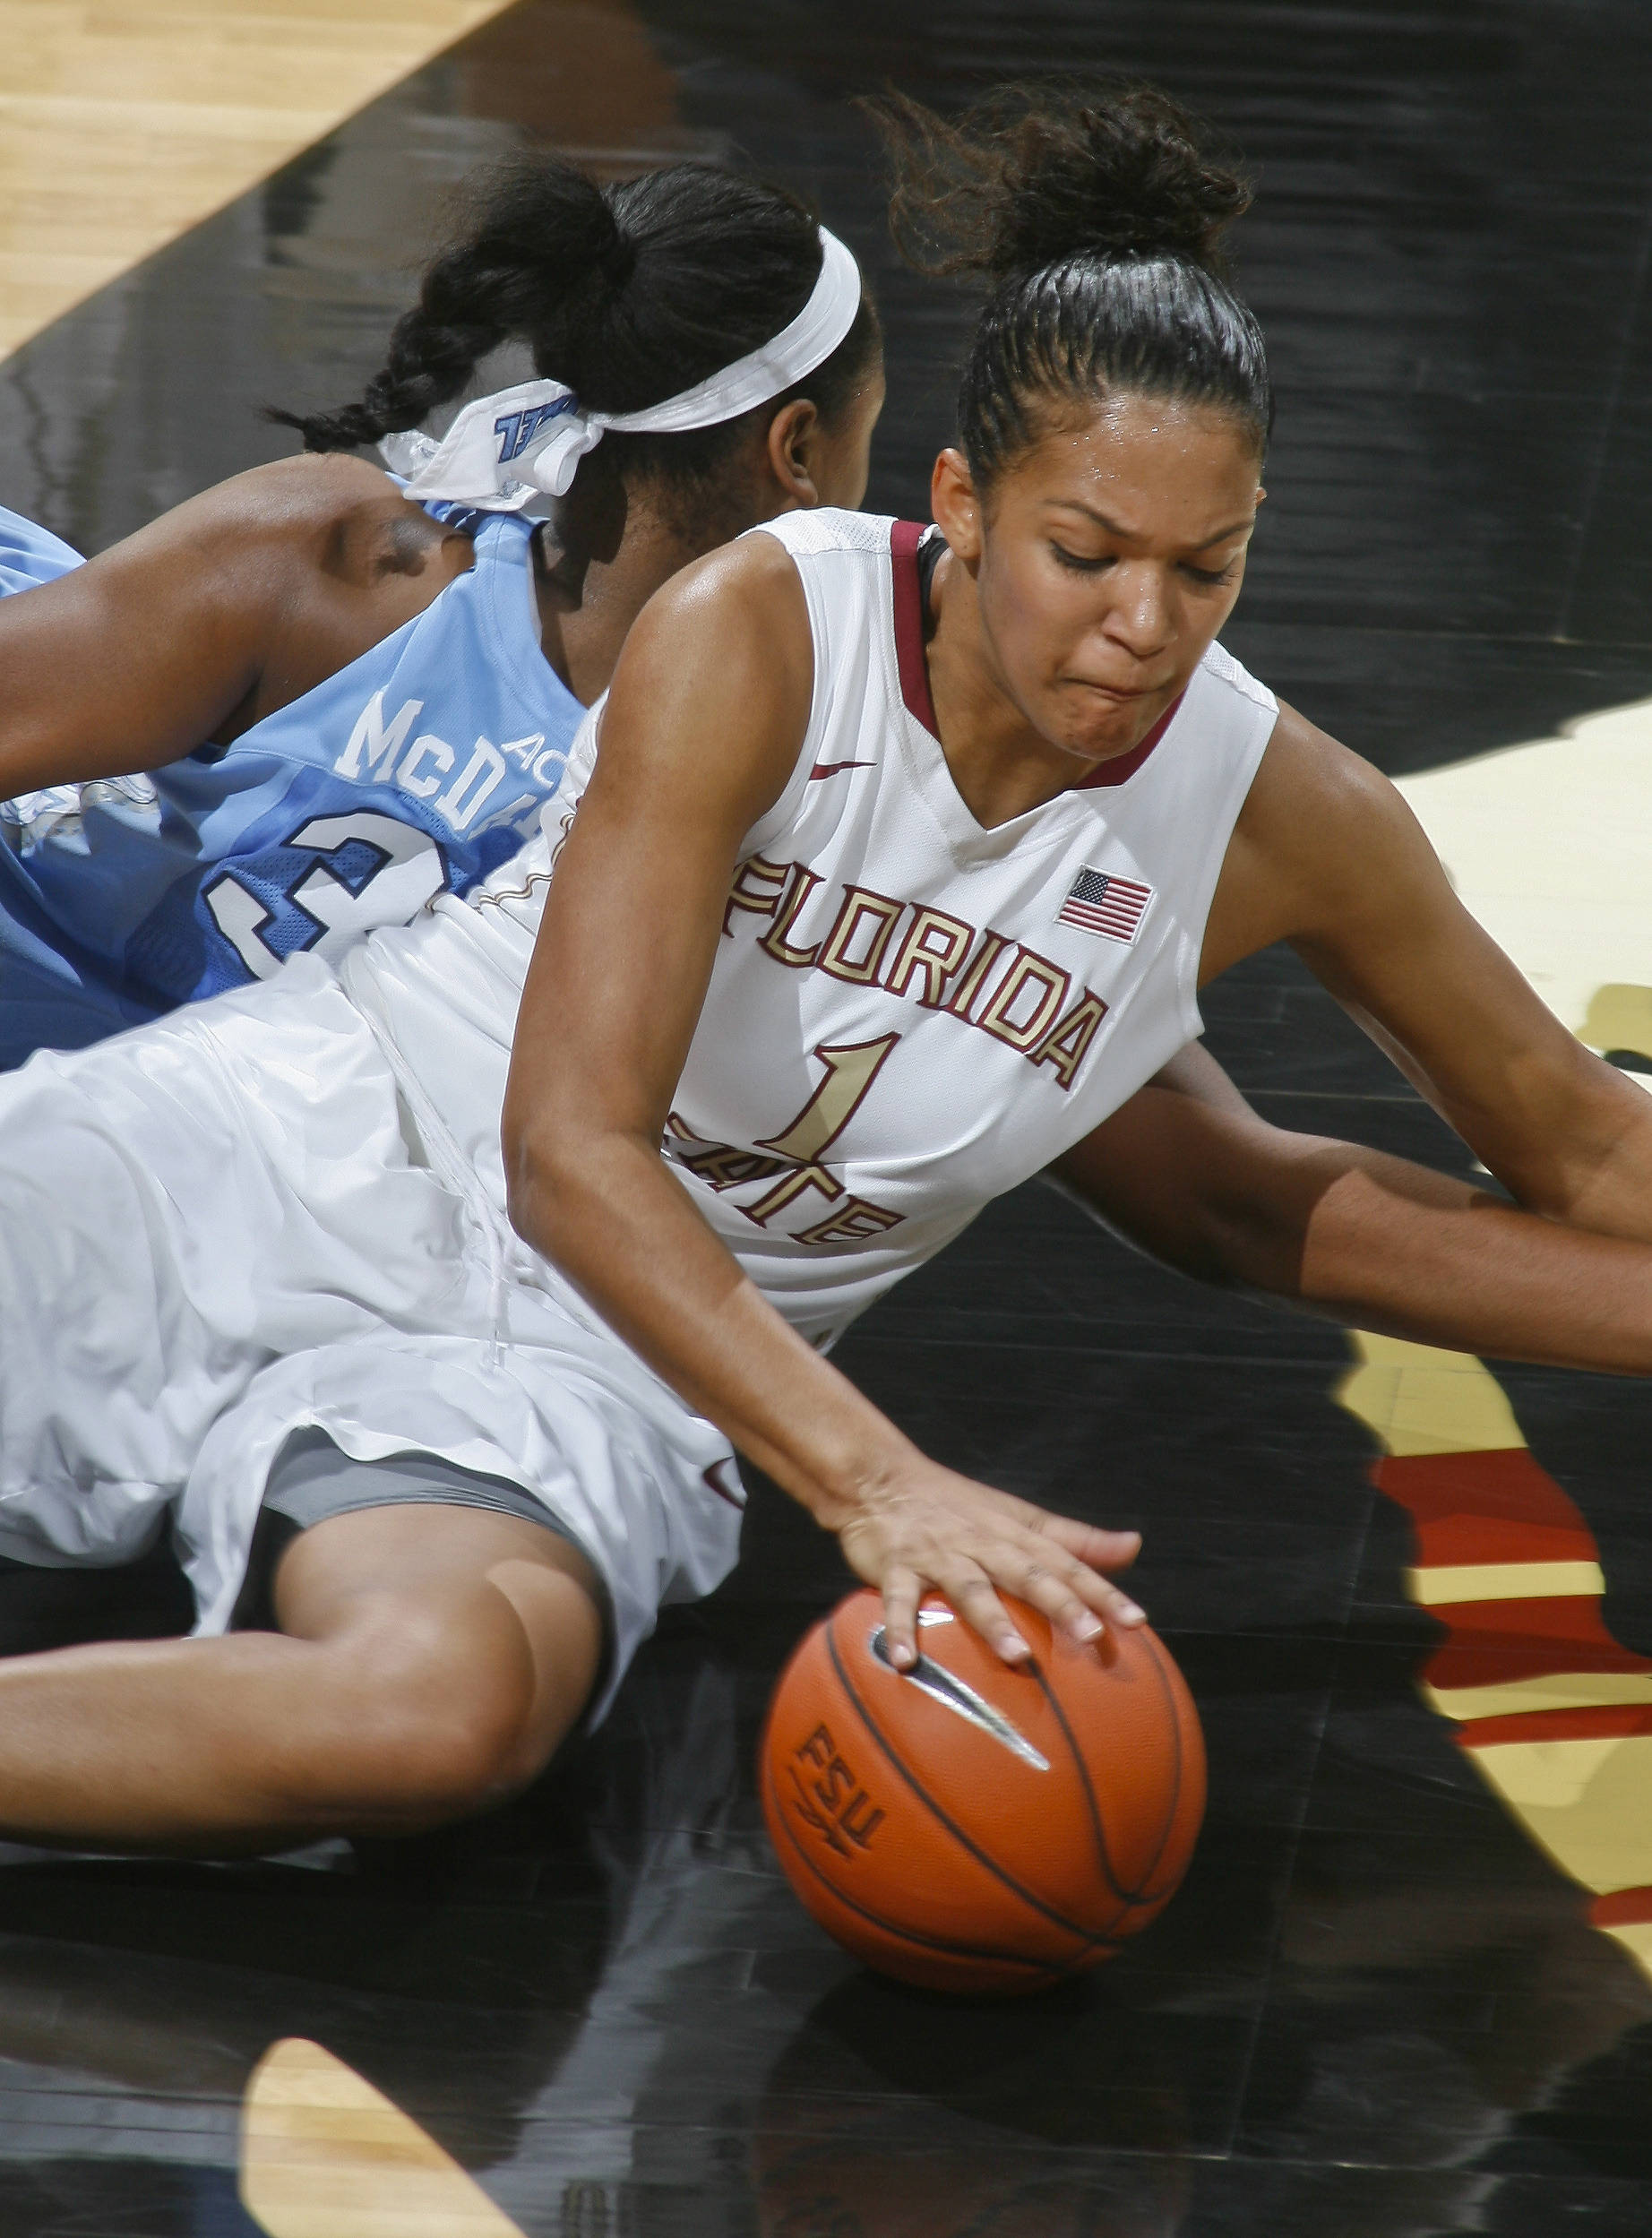 Jan 12, 2014; Tallahassee, FL, USA; Florida State Seminoles guard Morgan Jones (1) battles North Carolina Tar Heels forward Xylina McDaniel (34) for a loose ball in the first half at the Tucker Center. Mandatory Credit: Phil Sears-USA TODAY Sports